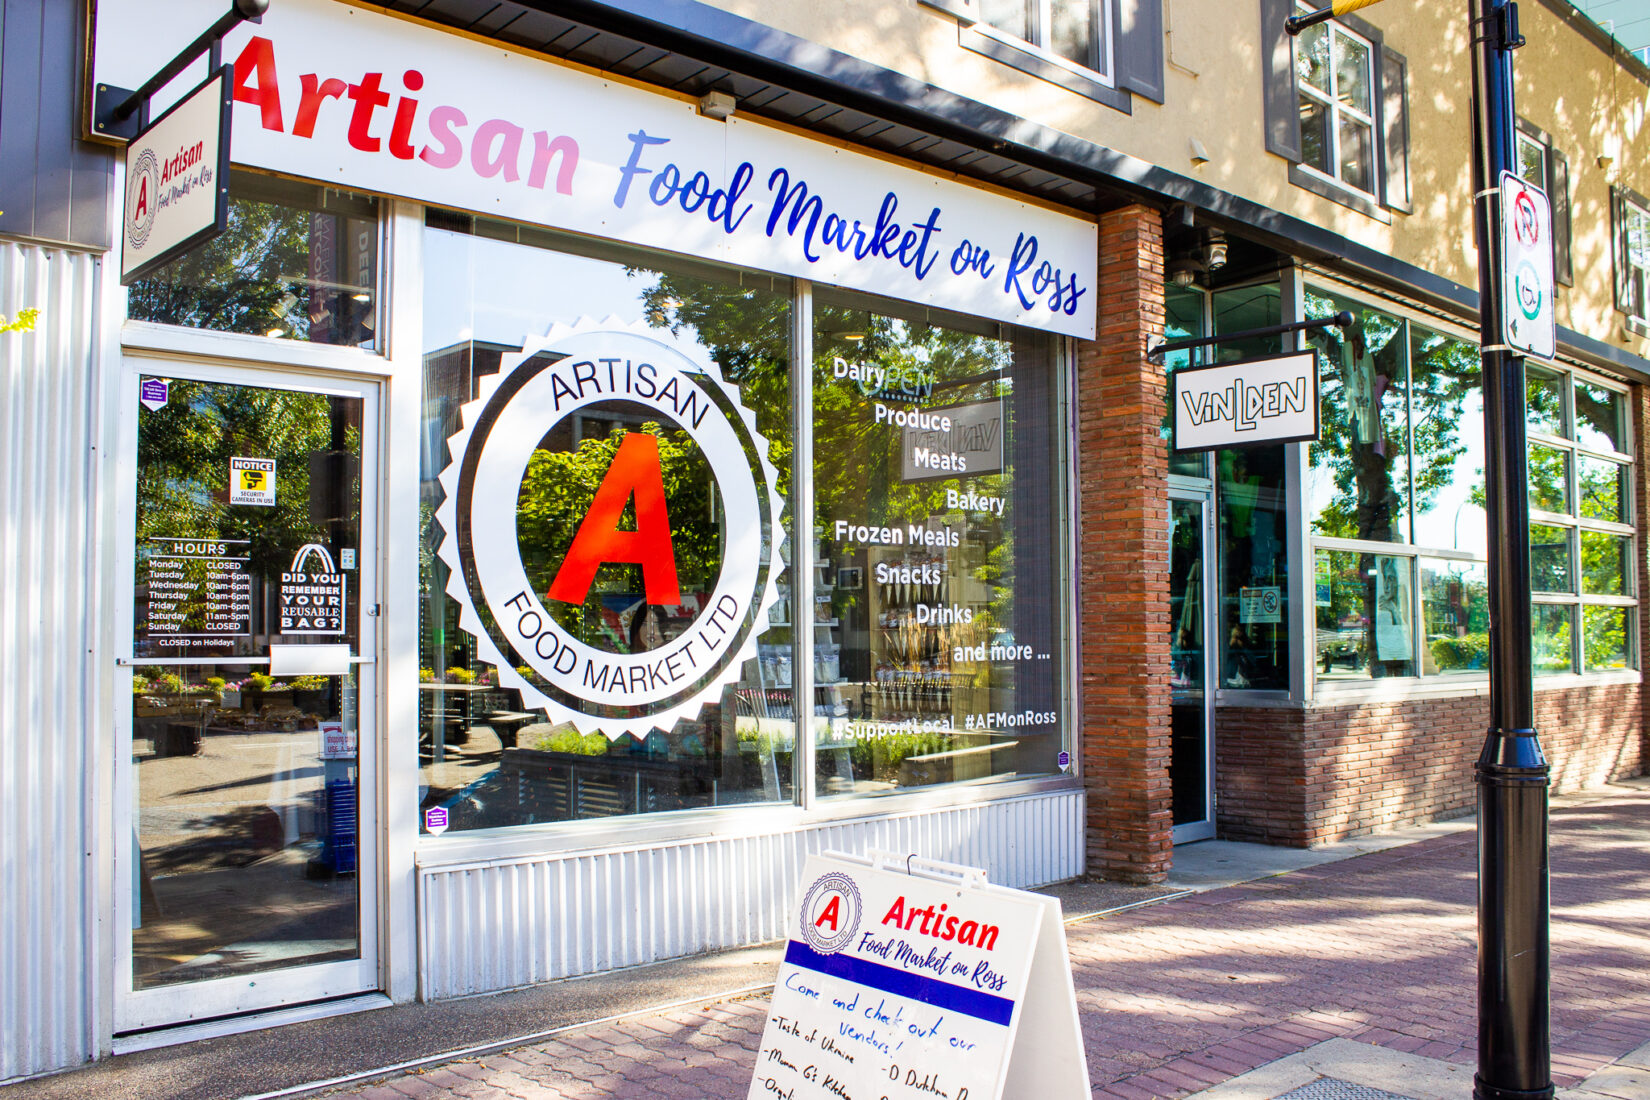 Business Spotlight: Artisan Food Market